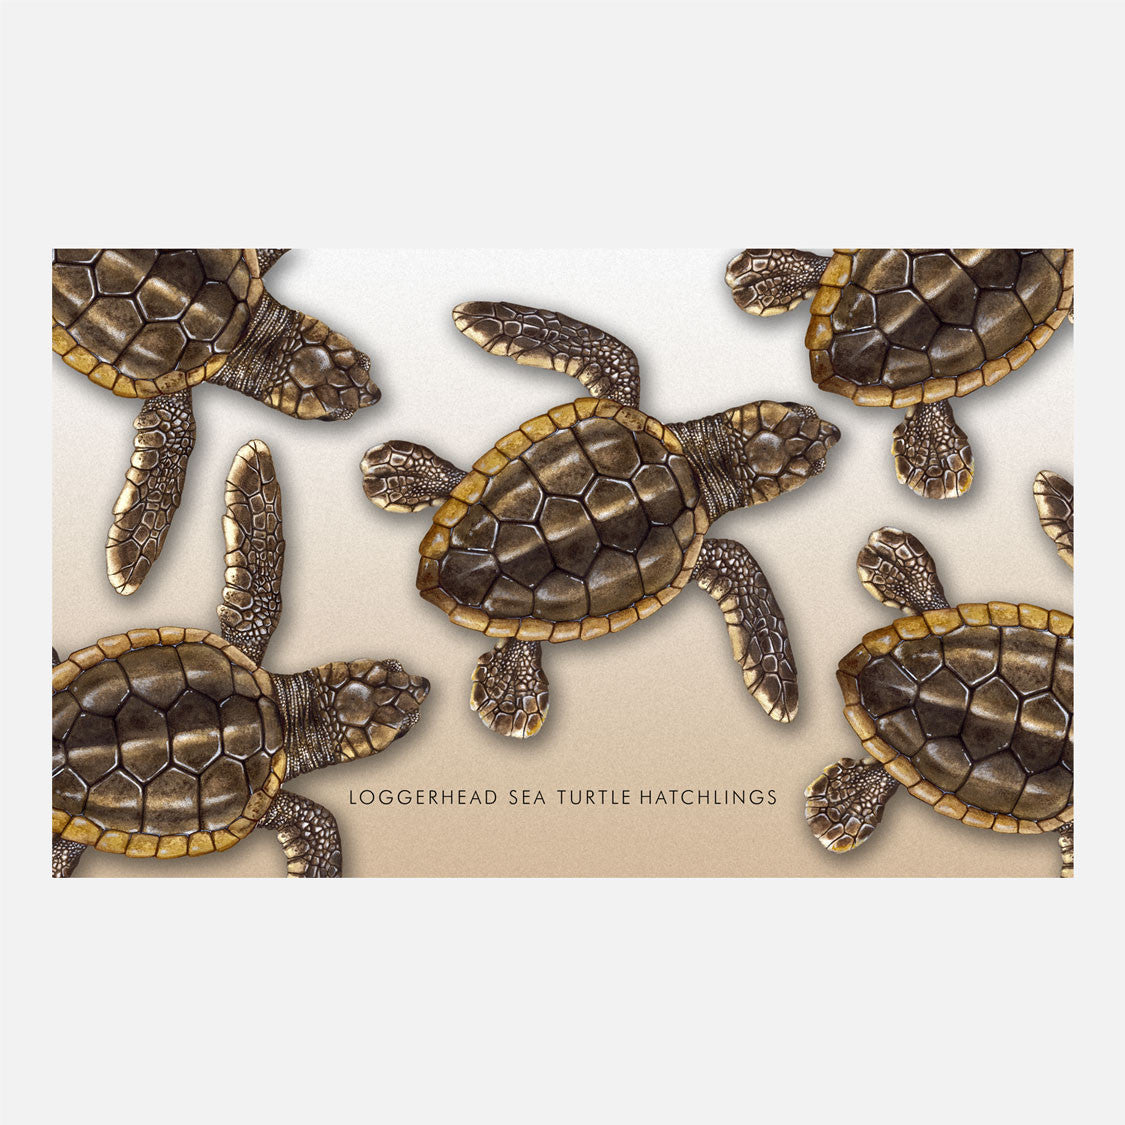 This design is an illustration of loggerhead sea turtle hatchlings, Caretta caretta.